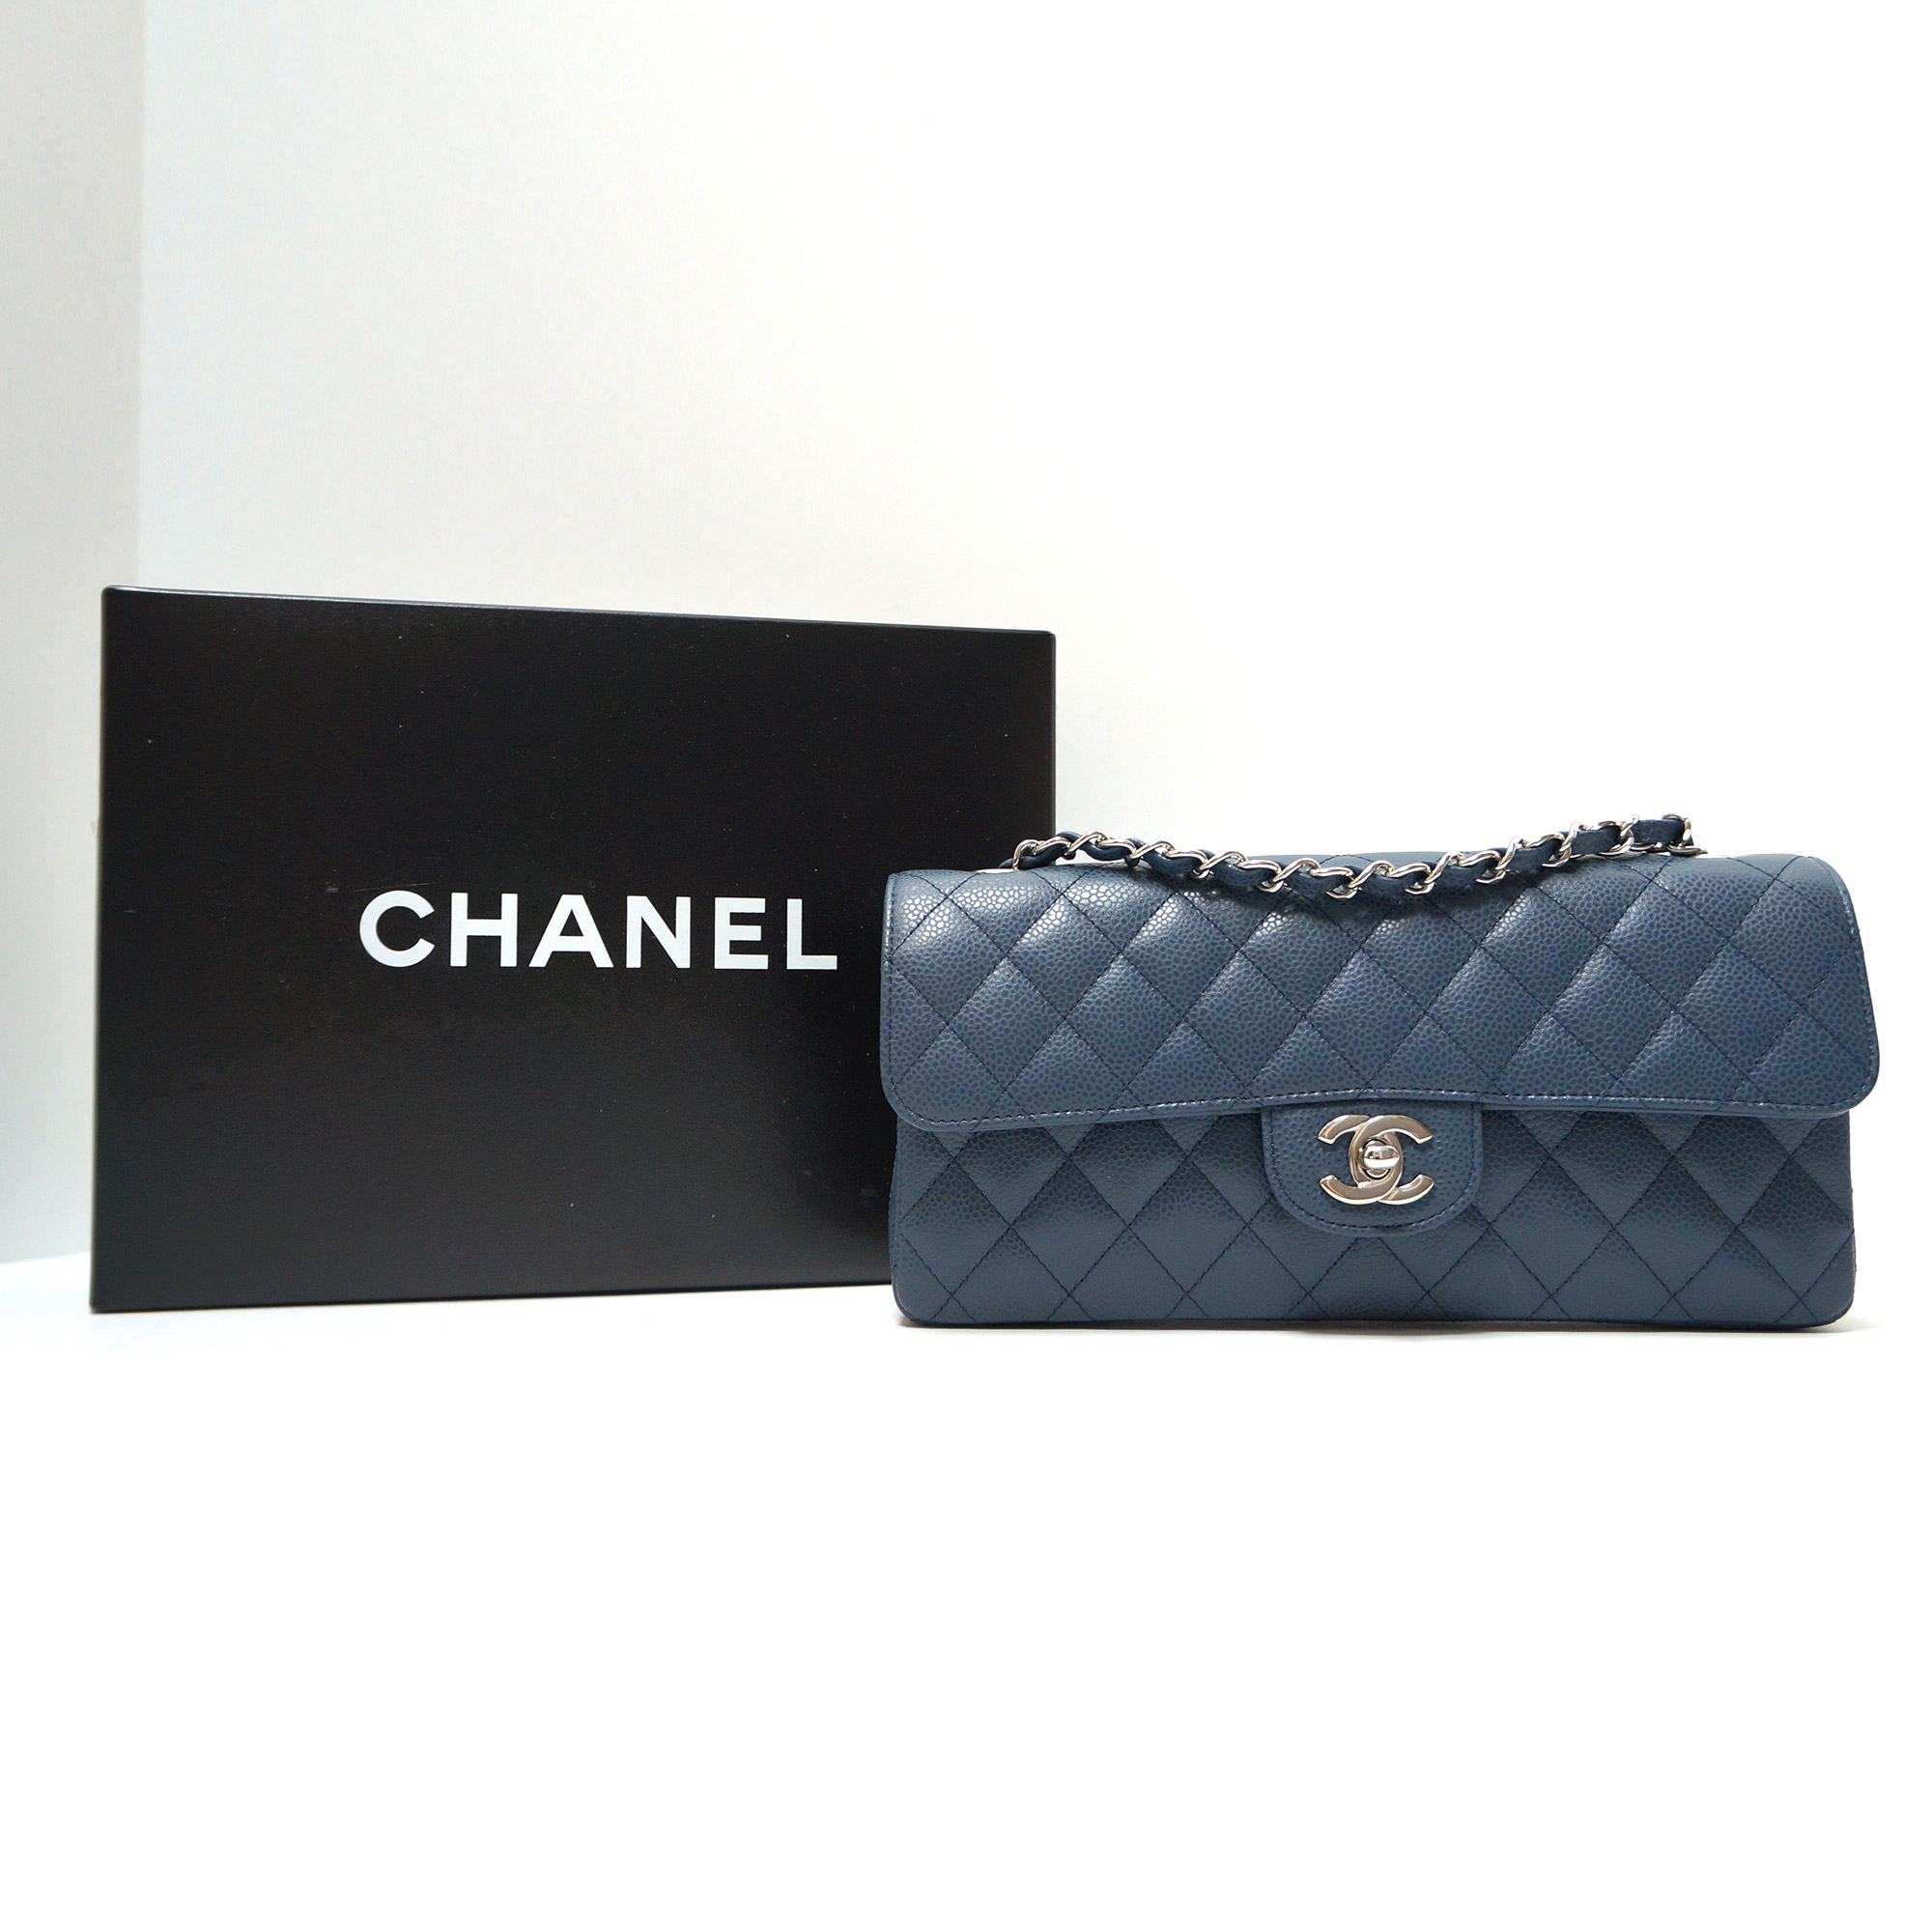 Chanel Small E/W Flap Bag in Dusty Blue Caviar Leather